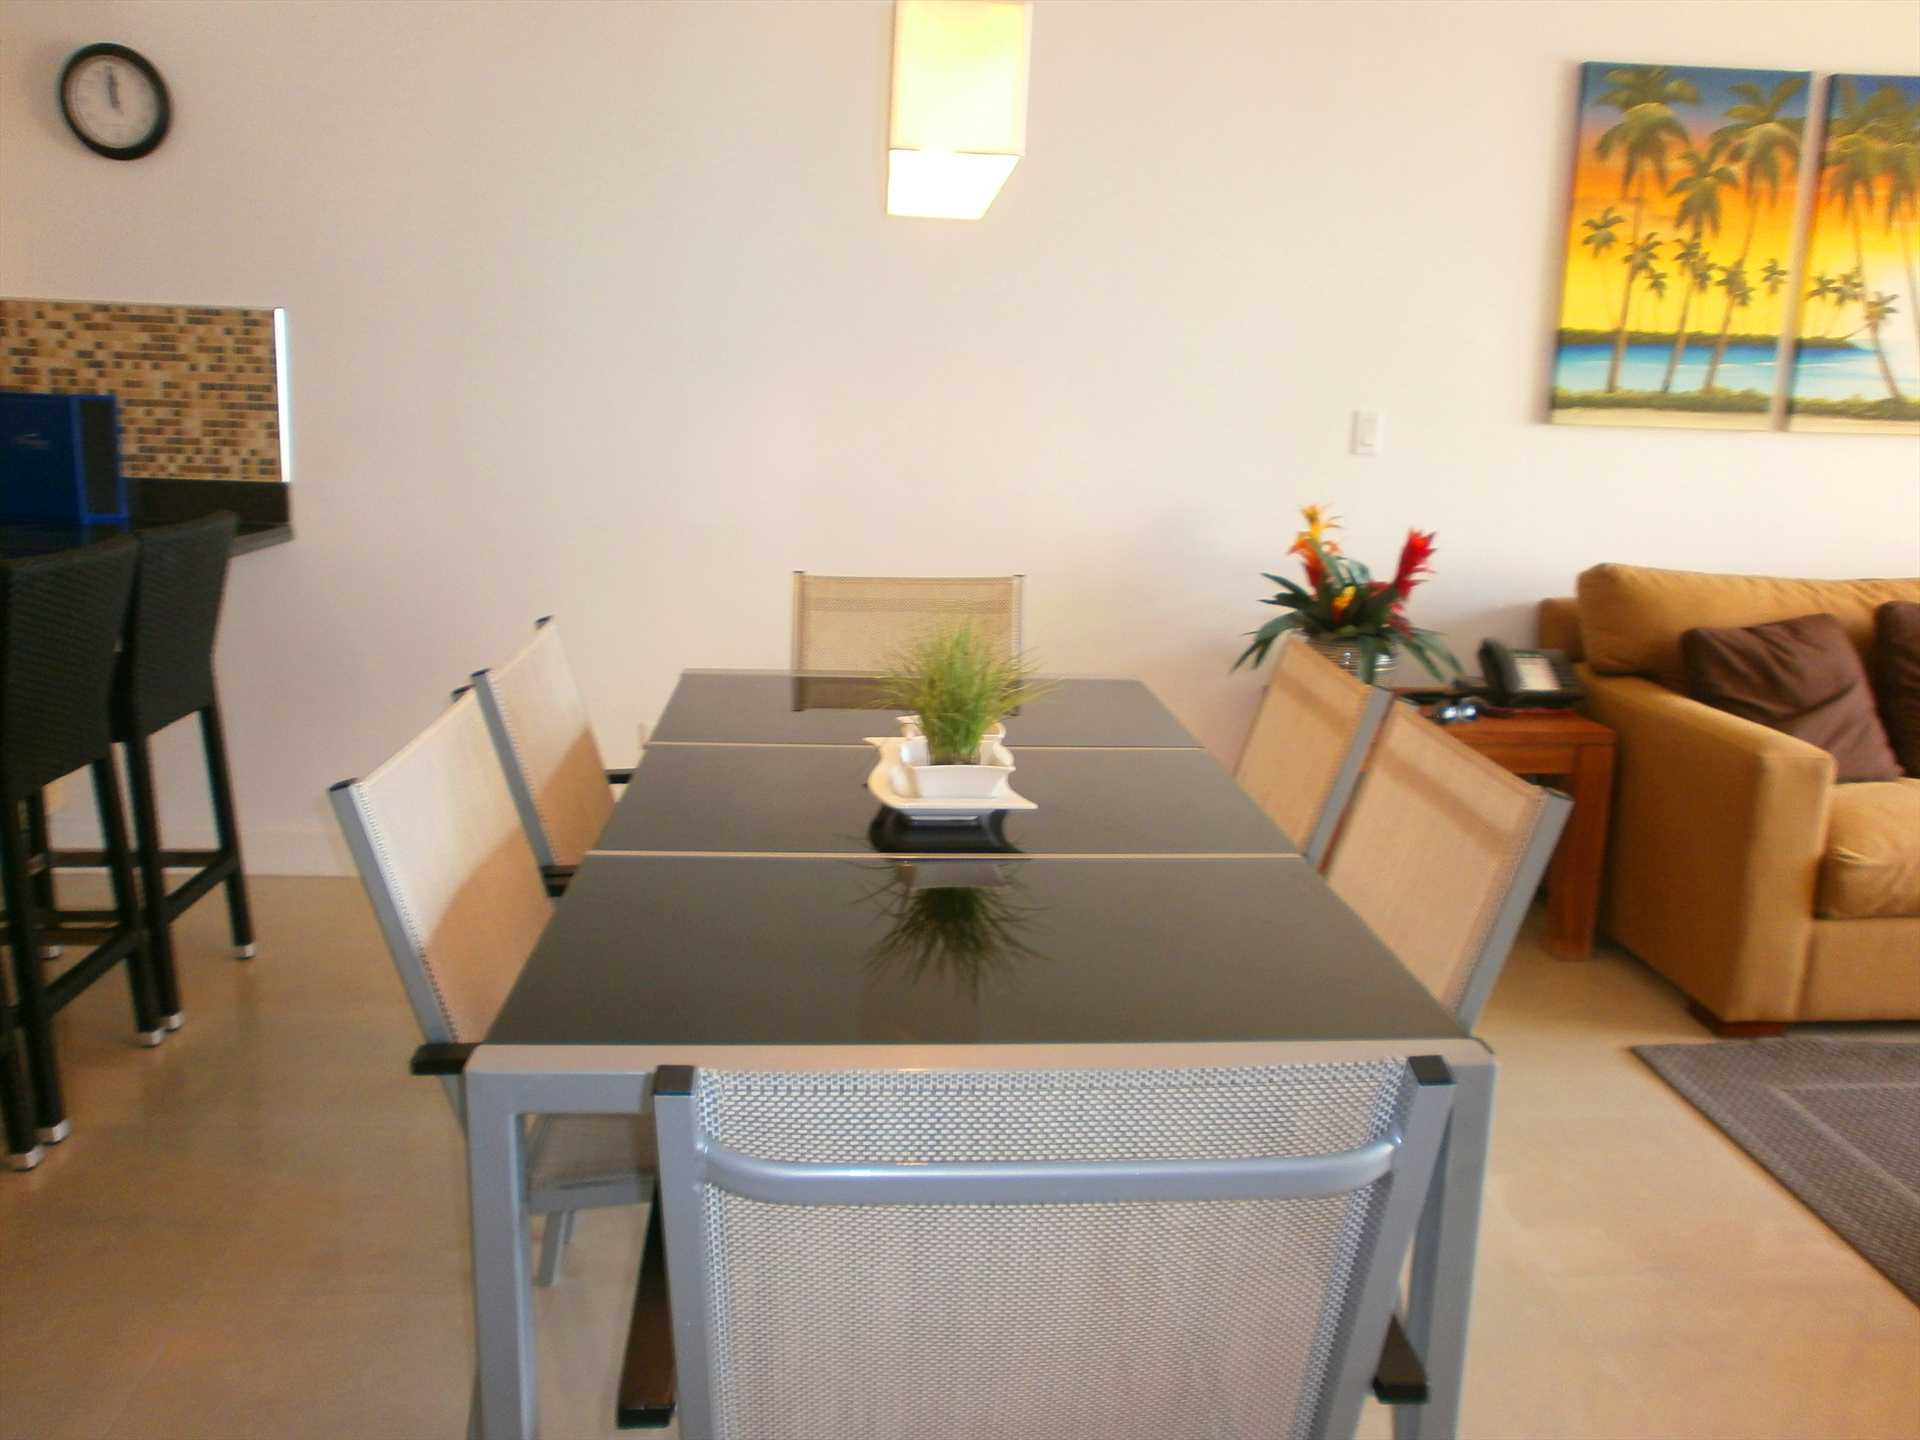 6-seat dining table in the dining area